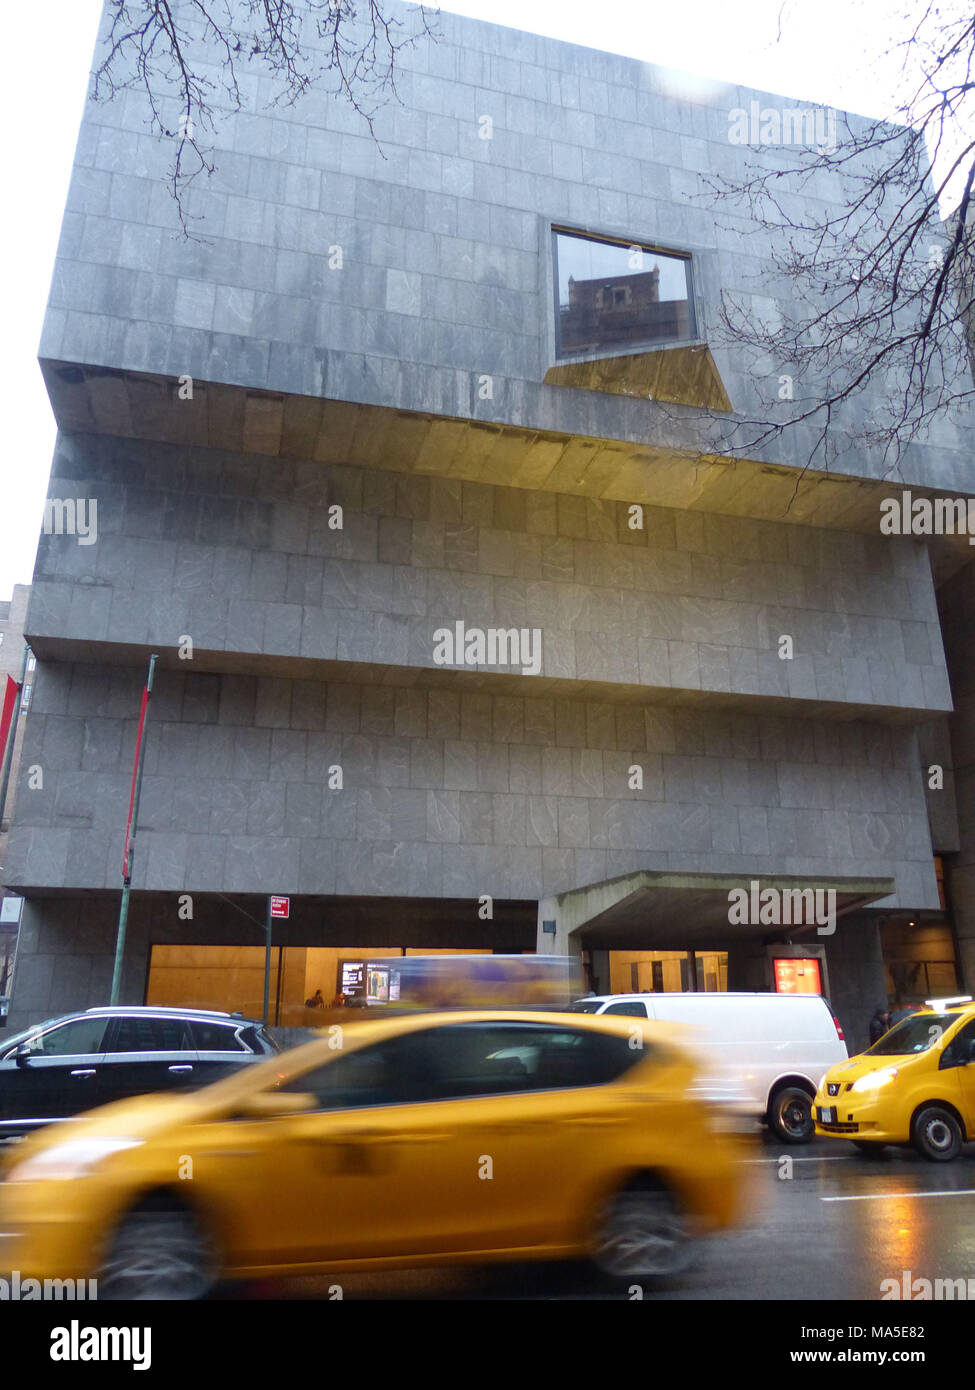 Whitney Museum of the American Art located at Madison Avenue and 75th Street. This museum was designed by Architect Marcel Breuer and since 2016 is leased by Metropolitan Museum of Art. It was originally commissioned by Gethrude Vanderbilt Whitney, an art lover and supporter - Stock Image